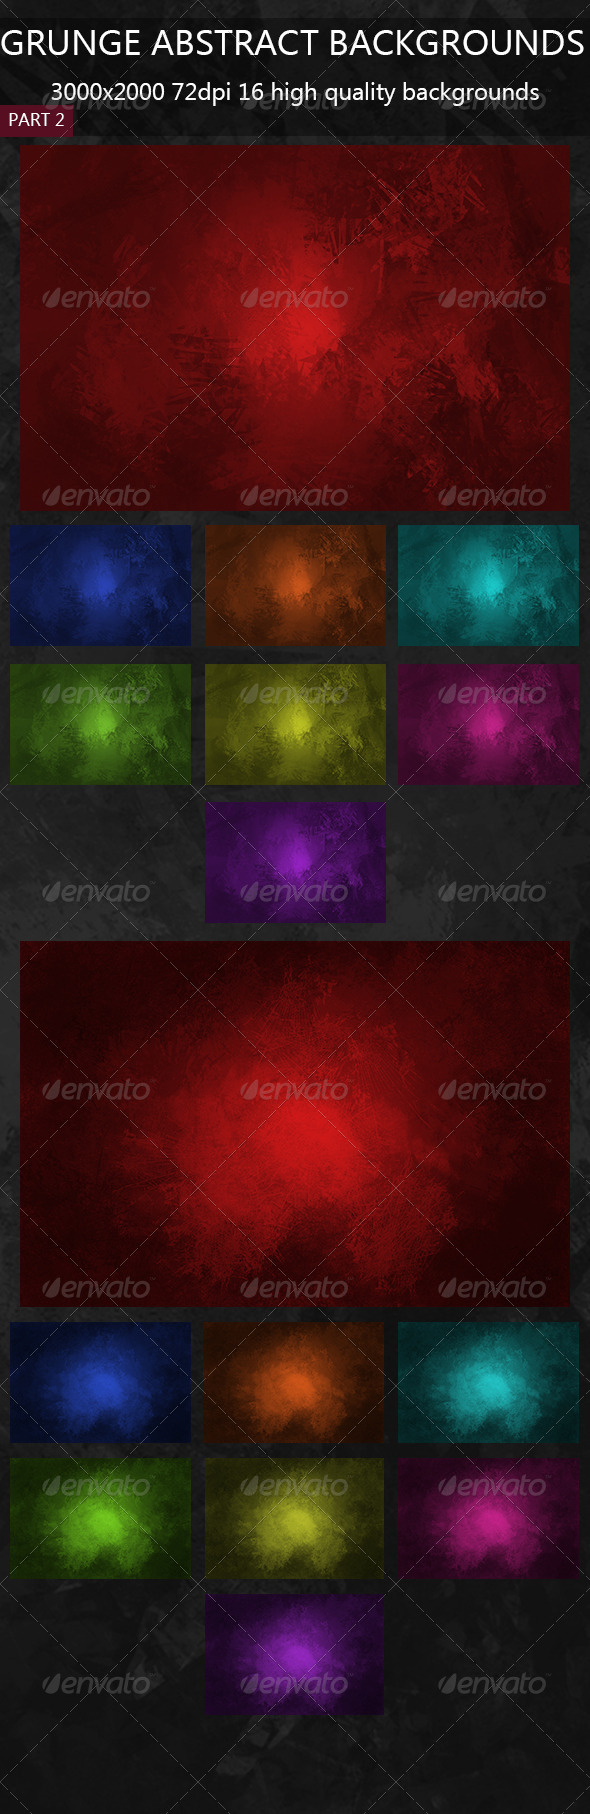 GraphicRiver Grunge abstract backgrounds 2in1 part 2 5451450